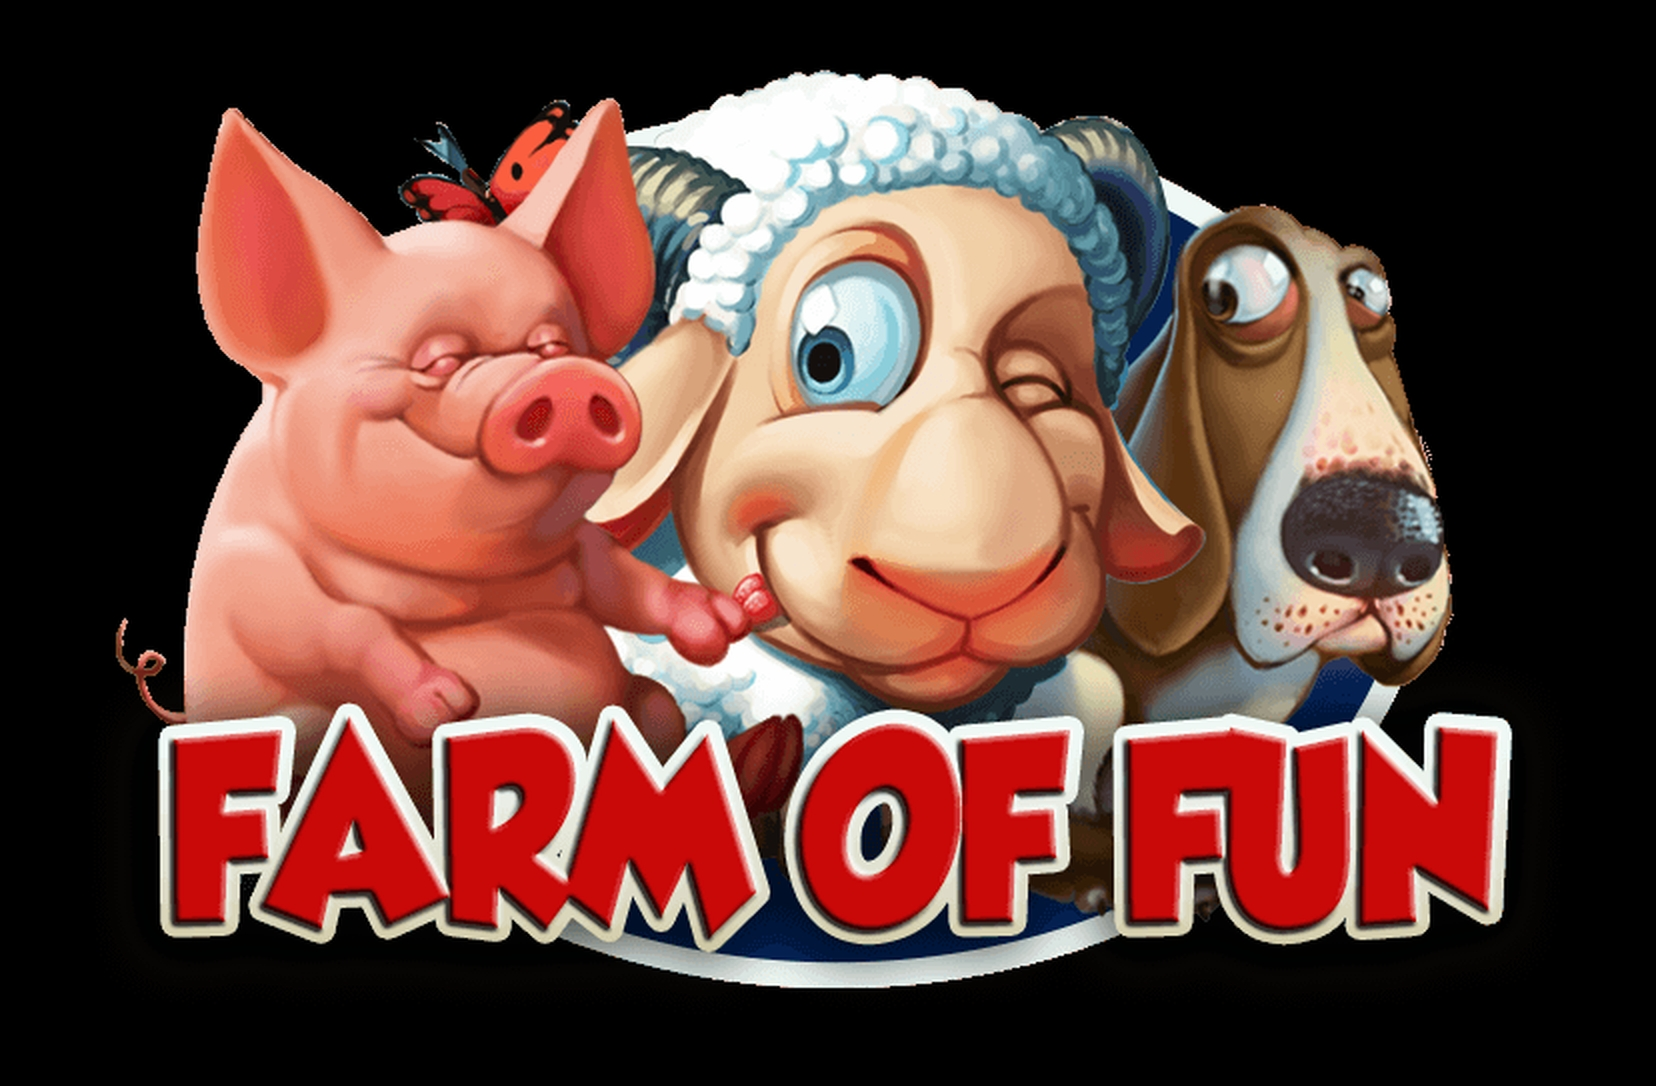 The Farm of Fun Online Slot Demo Game by Spinomenal